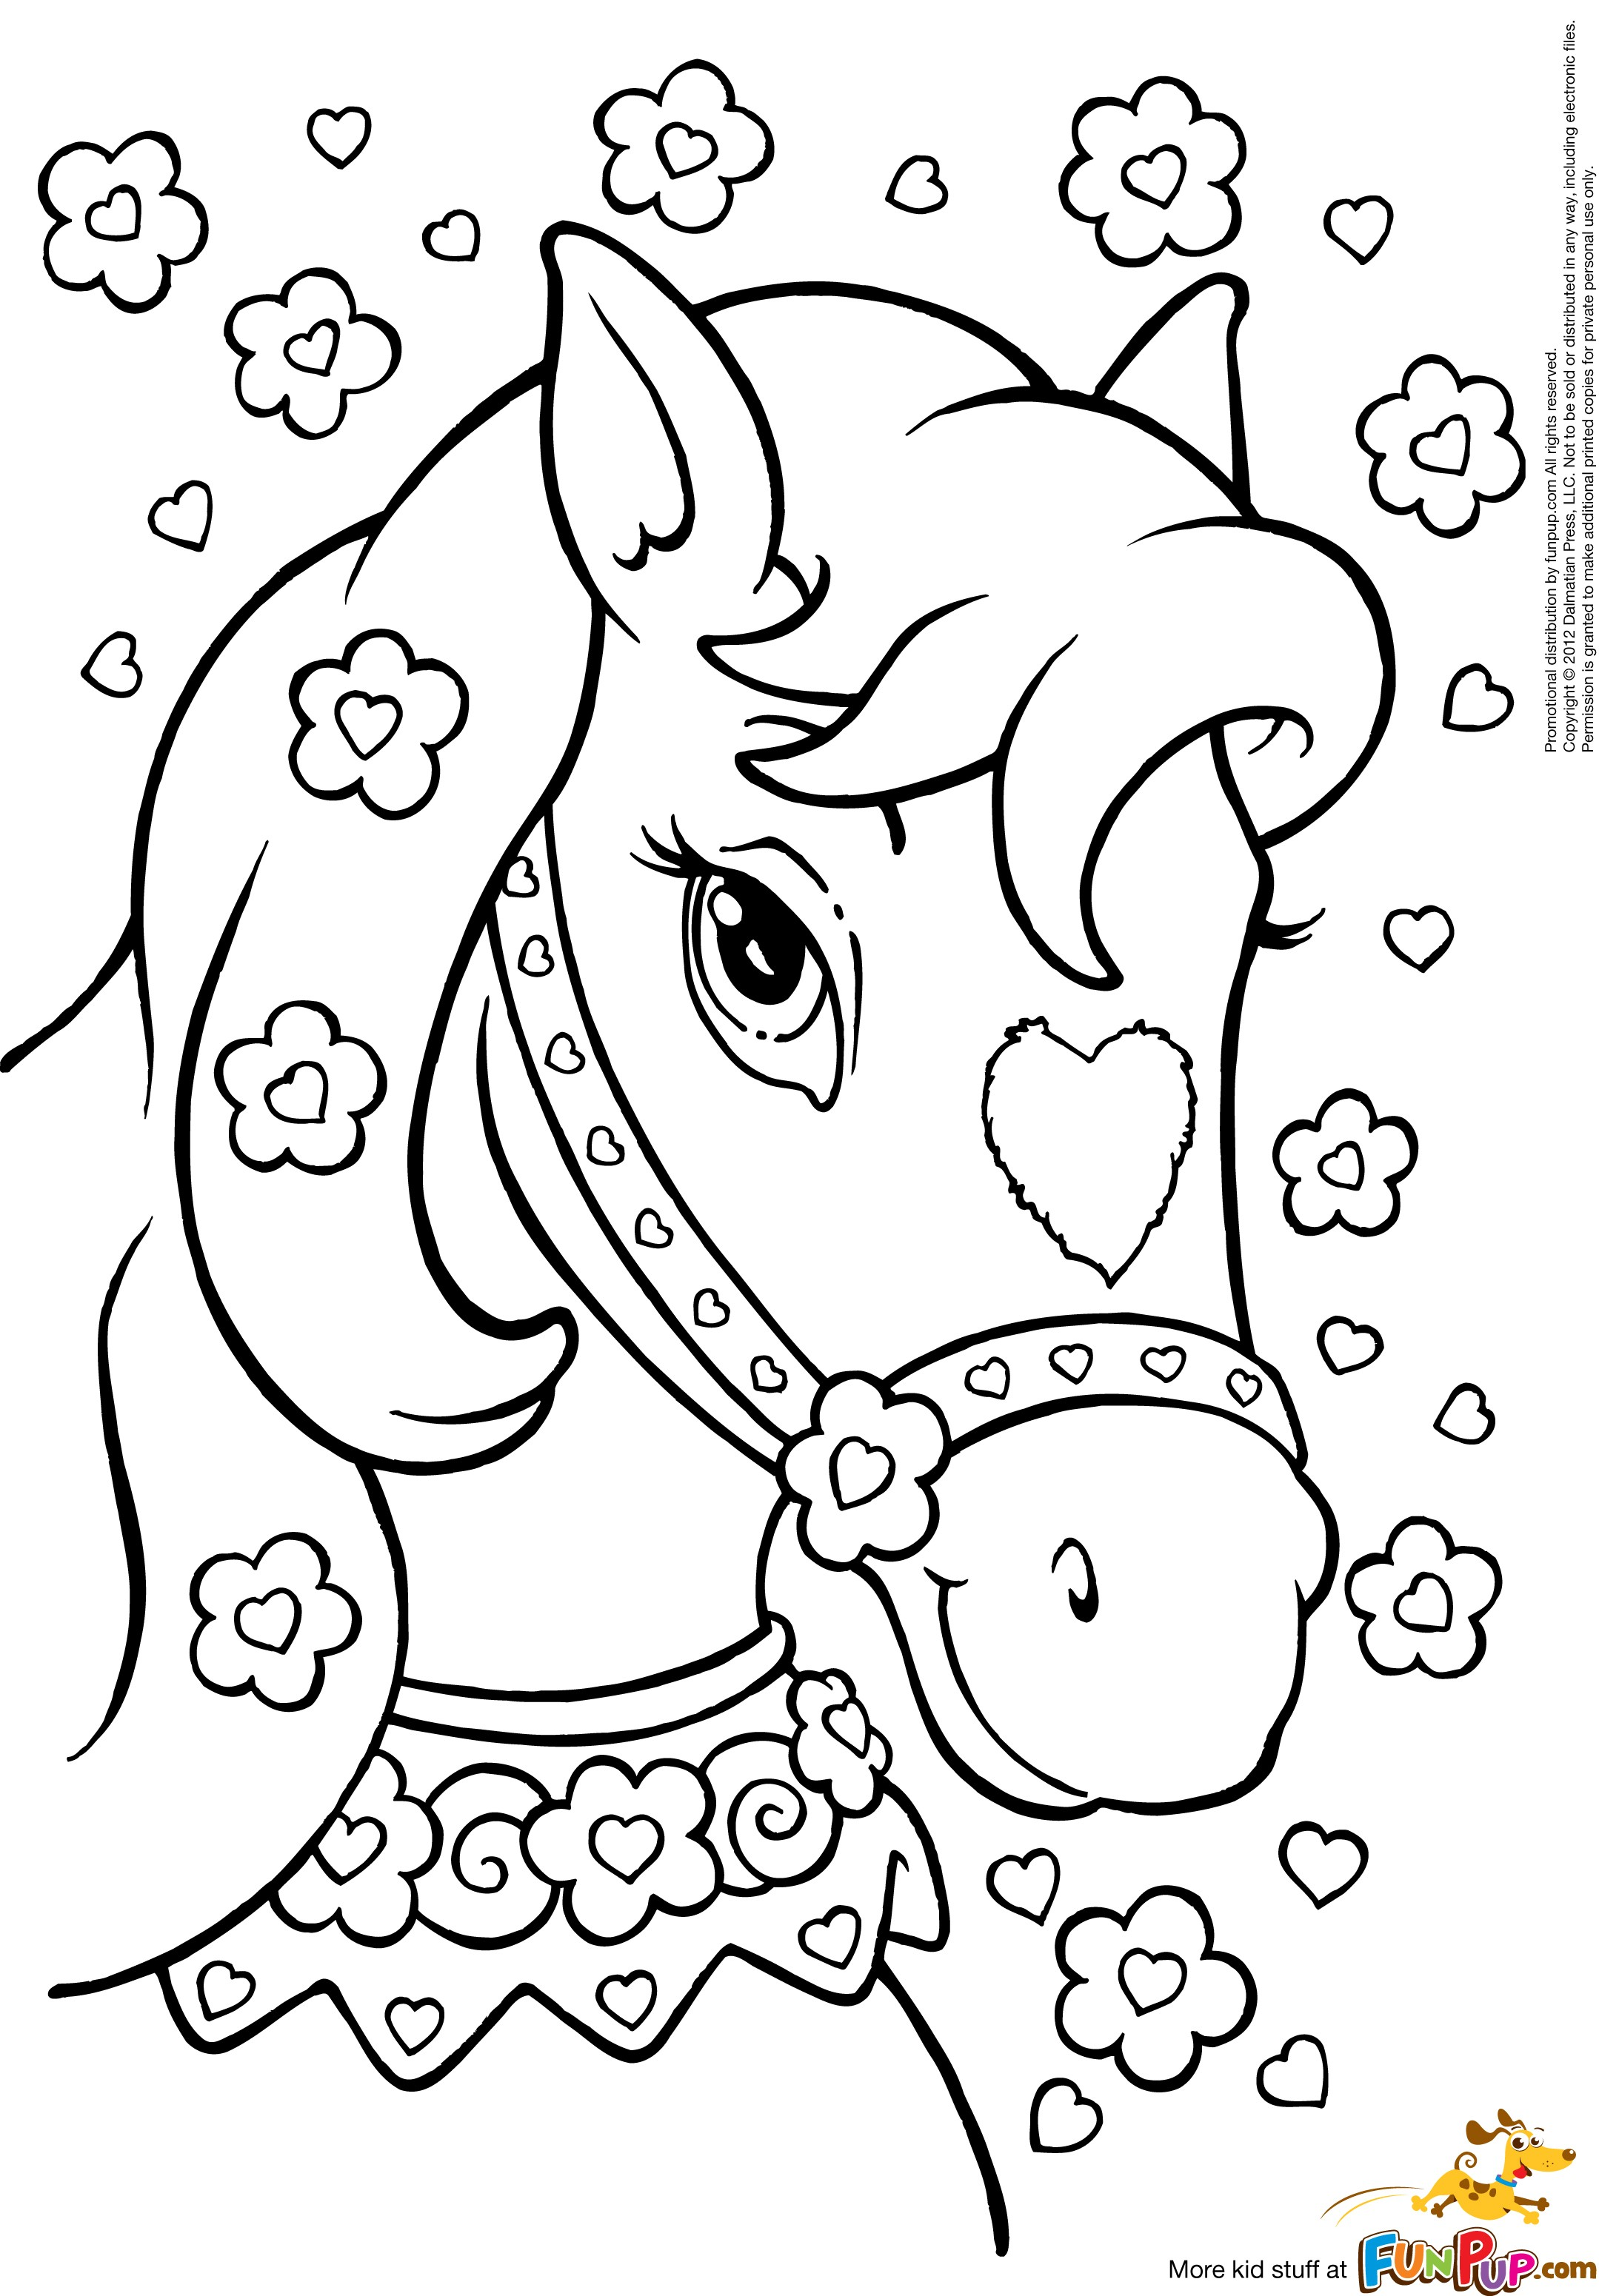 2159x3101 Succe Nice Free Princess Coloring Pages To Print